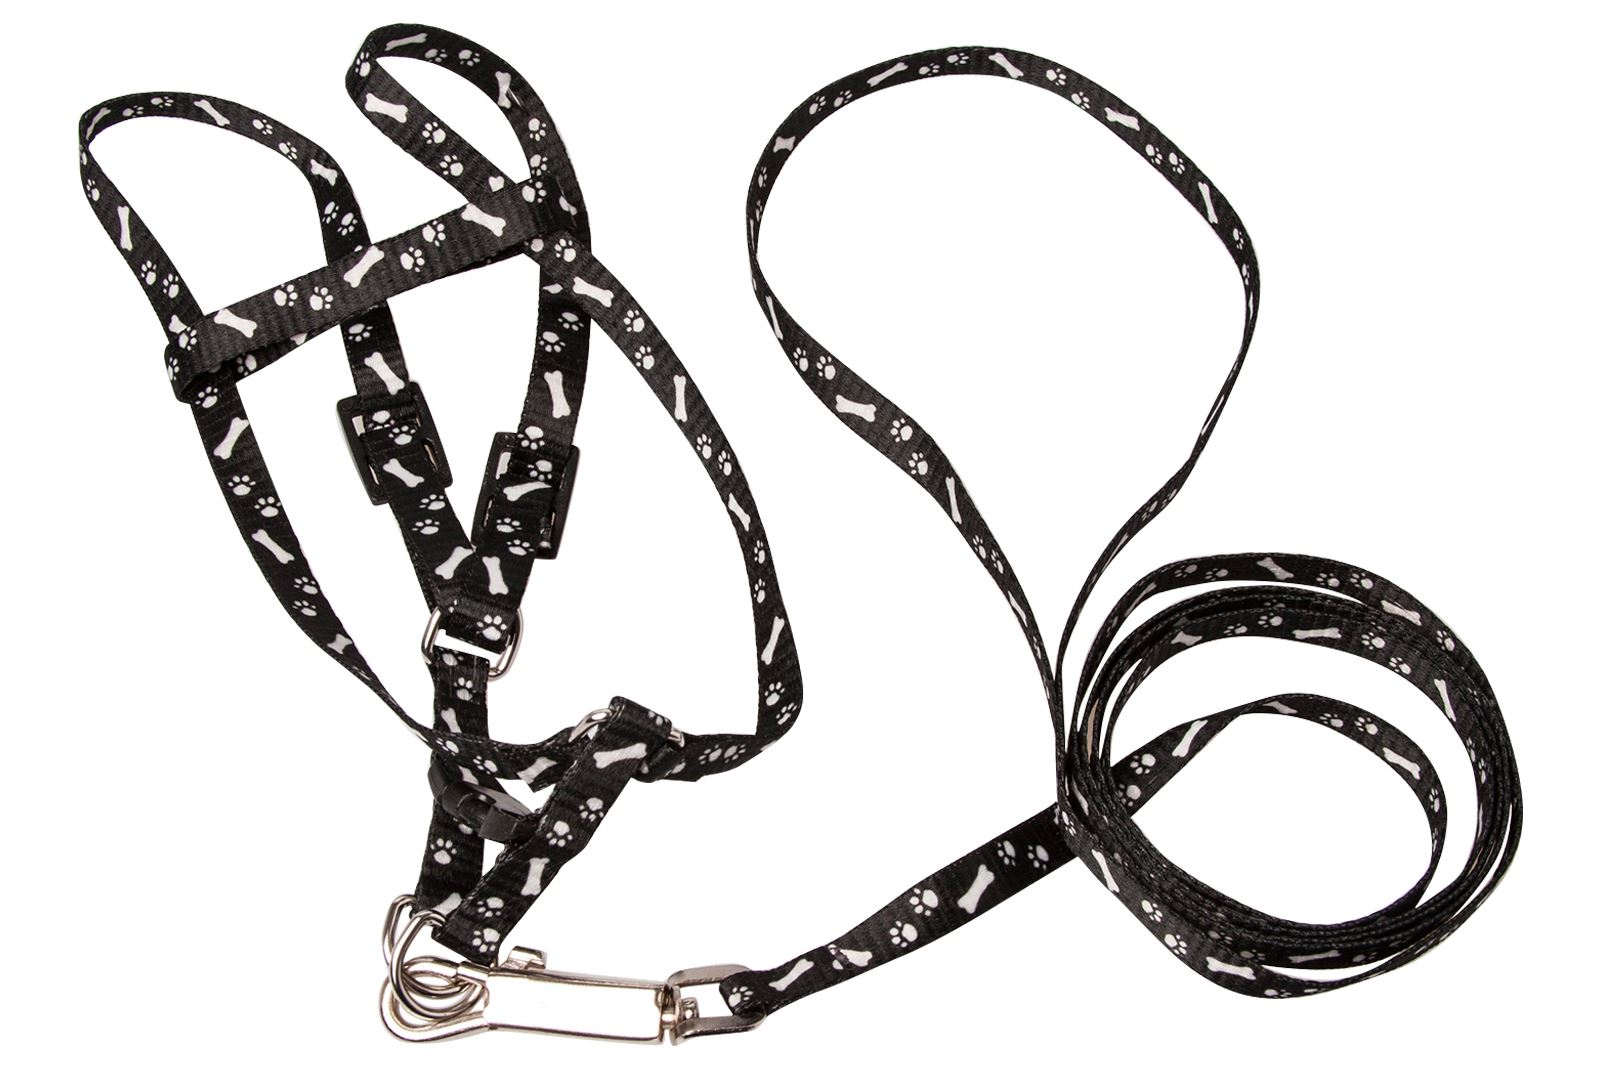 Small Dog Harness Amp Lead Puppy Harness Amp Lead Dog Training Harness Amp Lead